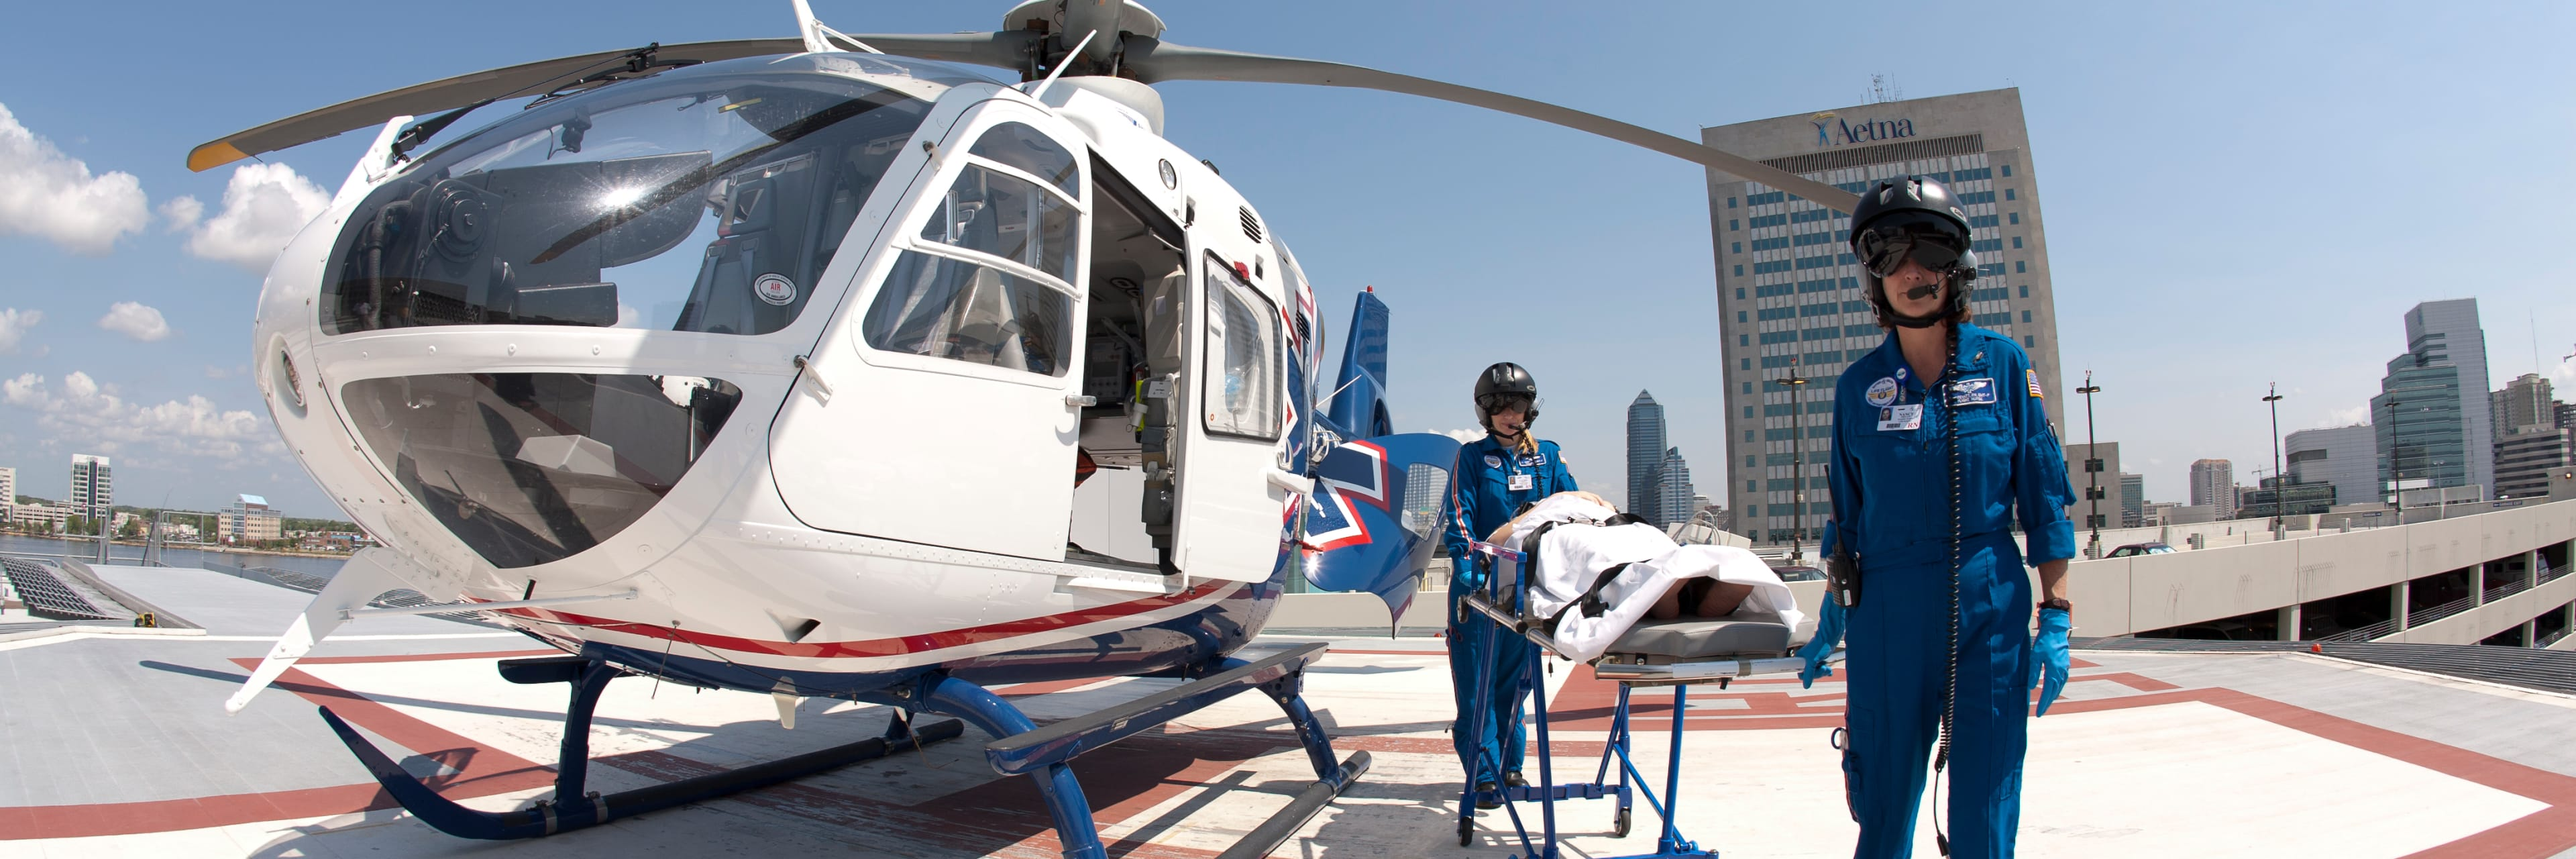 Medical workers next to an emergency helicopter on helipad